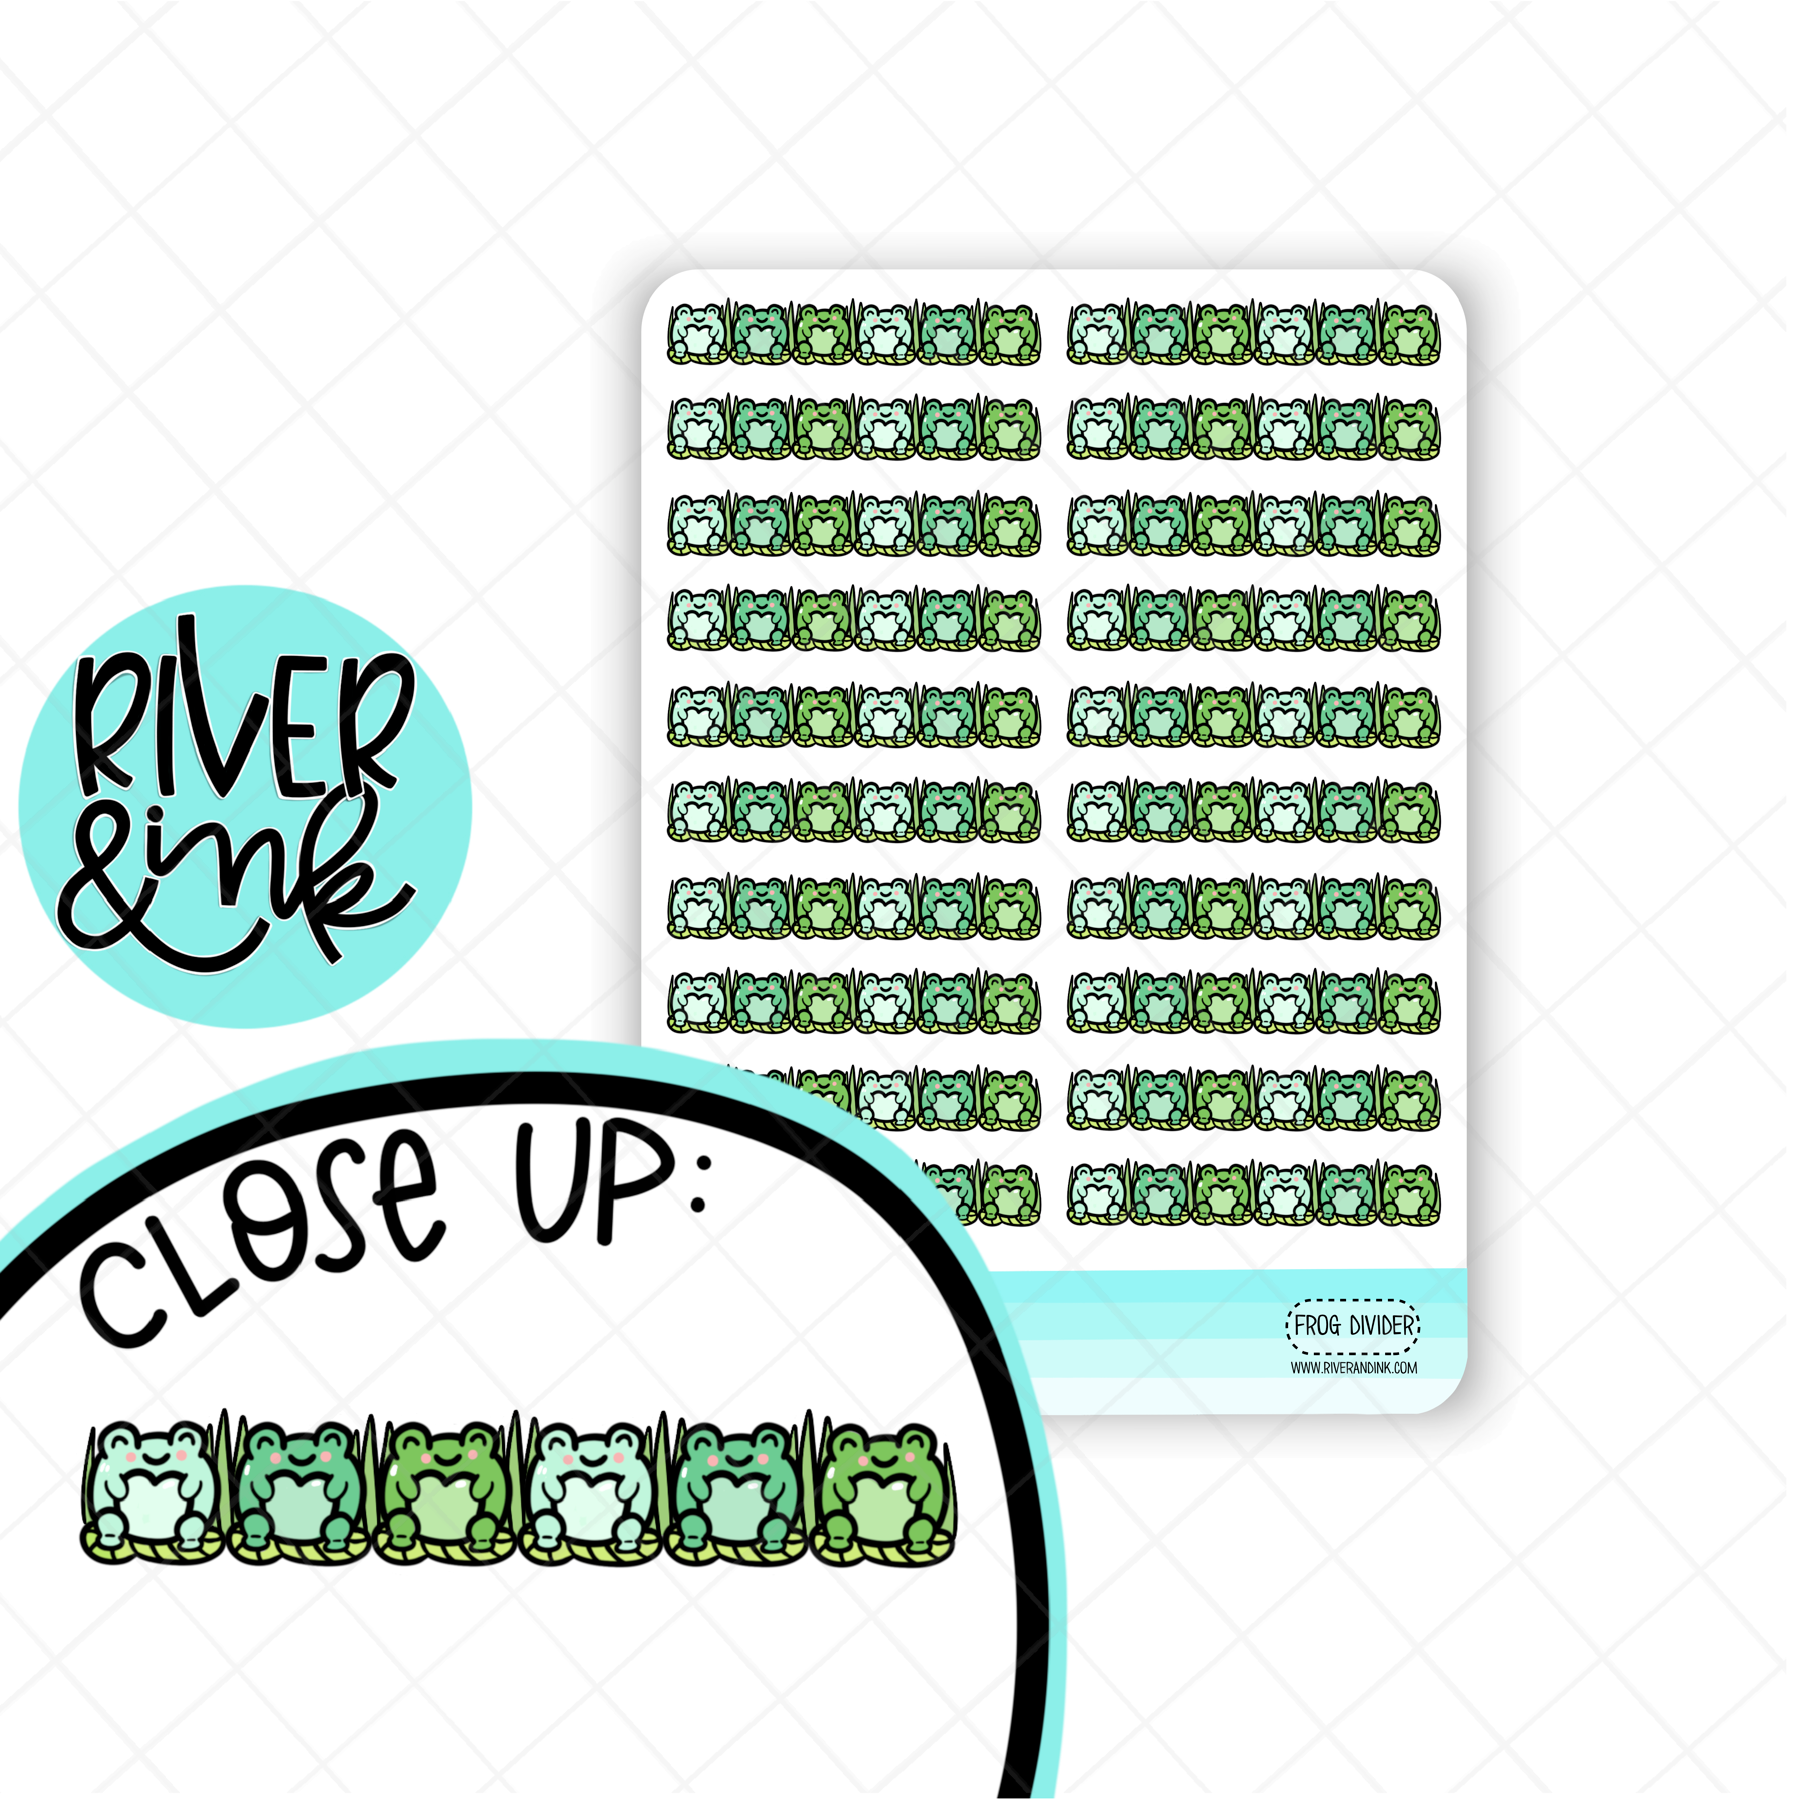 Frog Divider | Hand Drawn Planner Stickers